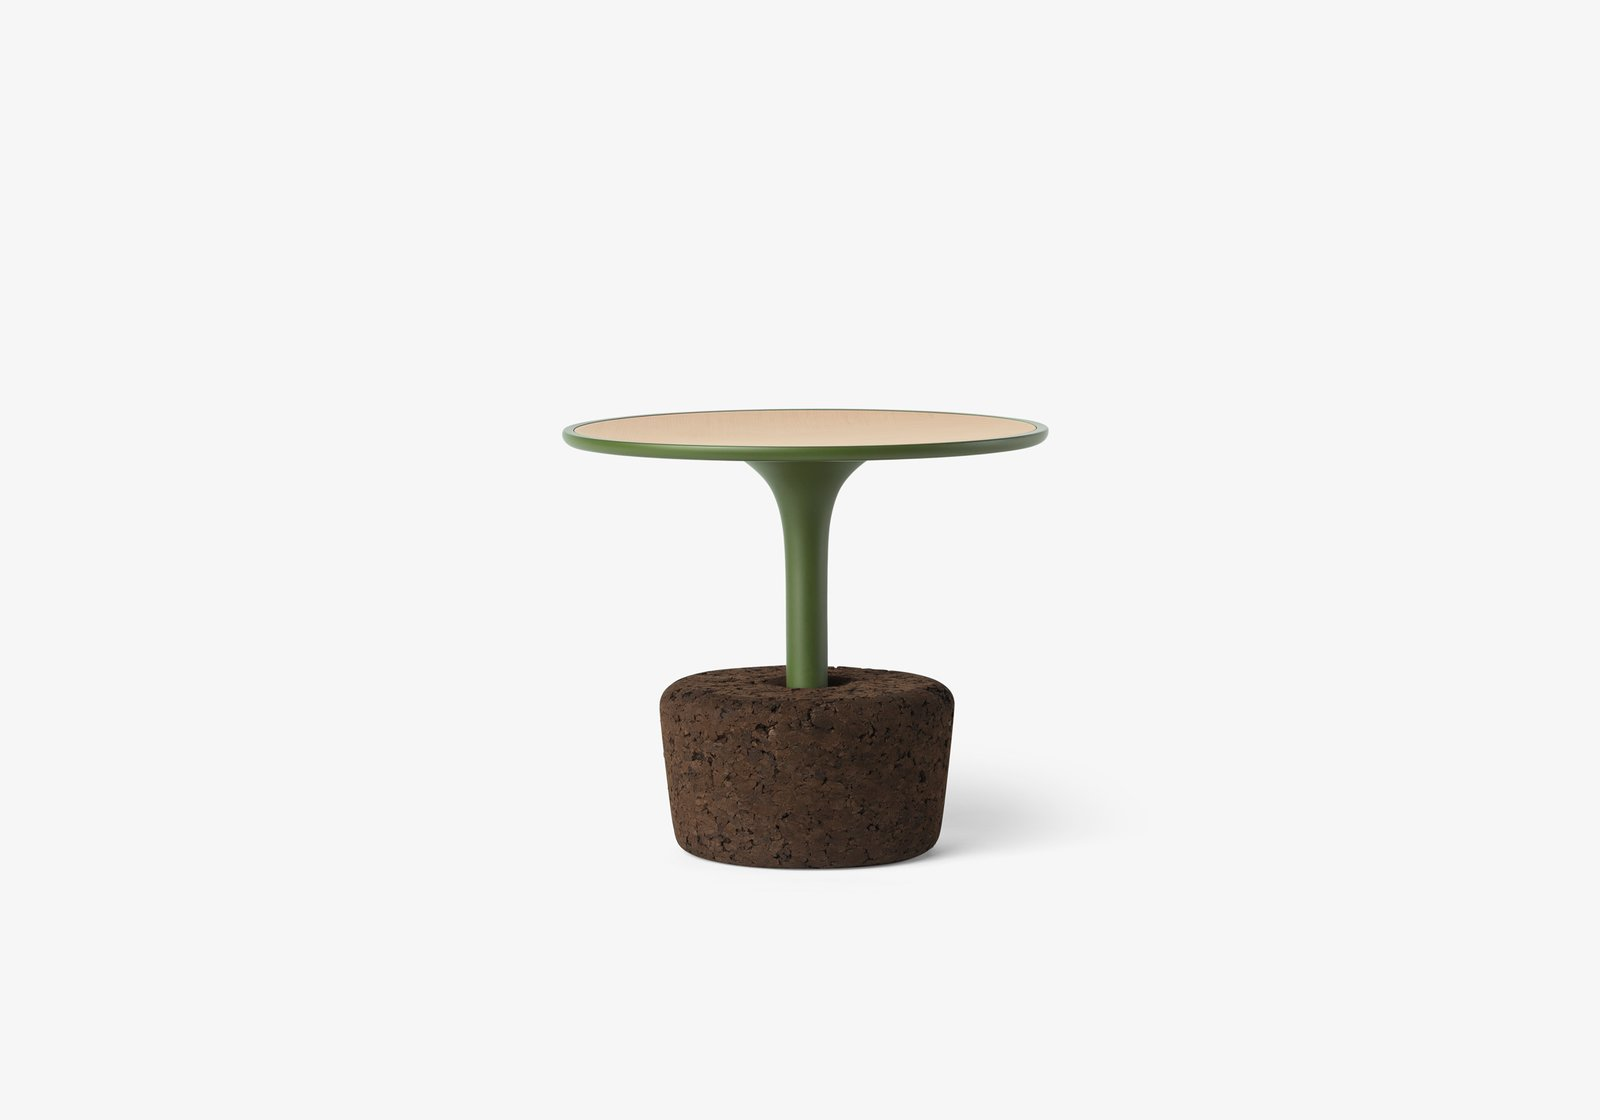 "Flora Small Low  FLORA is a set of coffee tables that refers to the plants we offer to the ones we love, so there is a similarity between taking care of plants and taking care of the objects. These versatile tables combine natural materials, with four sizes and six different colored frame finishes and may be used separately or together.  Size  Ø40 x H35 cm / Ø15,7'' x H14''.  Weight  4,3 kg / 9,5 lbs.   Search ""기흥출장안마【Ø1Ø↔3Ø67↔661Ø】⊀후불제⊁기흥출장마사지 기흥콜걸출장안마후기【20대맞춤】기흥콜걸출장마사지 기흥출장샵강추 기흥모텔출장美人기흥출장맛사지후기∠기흥출장안마추천후기 기흥출장여대생"" from Floras"